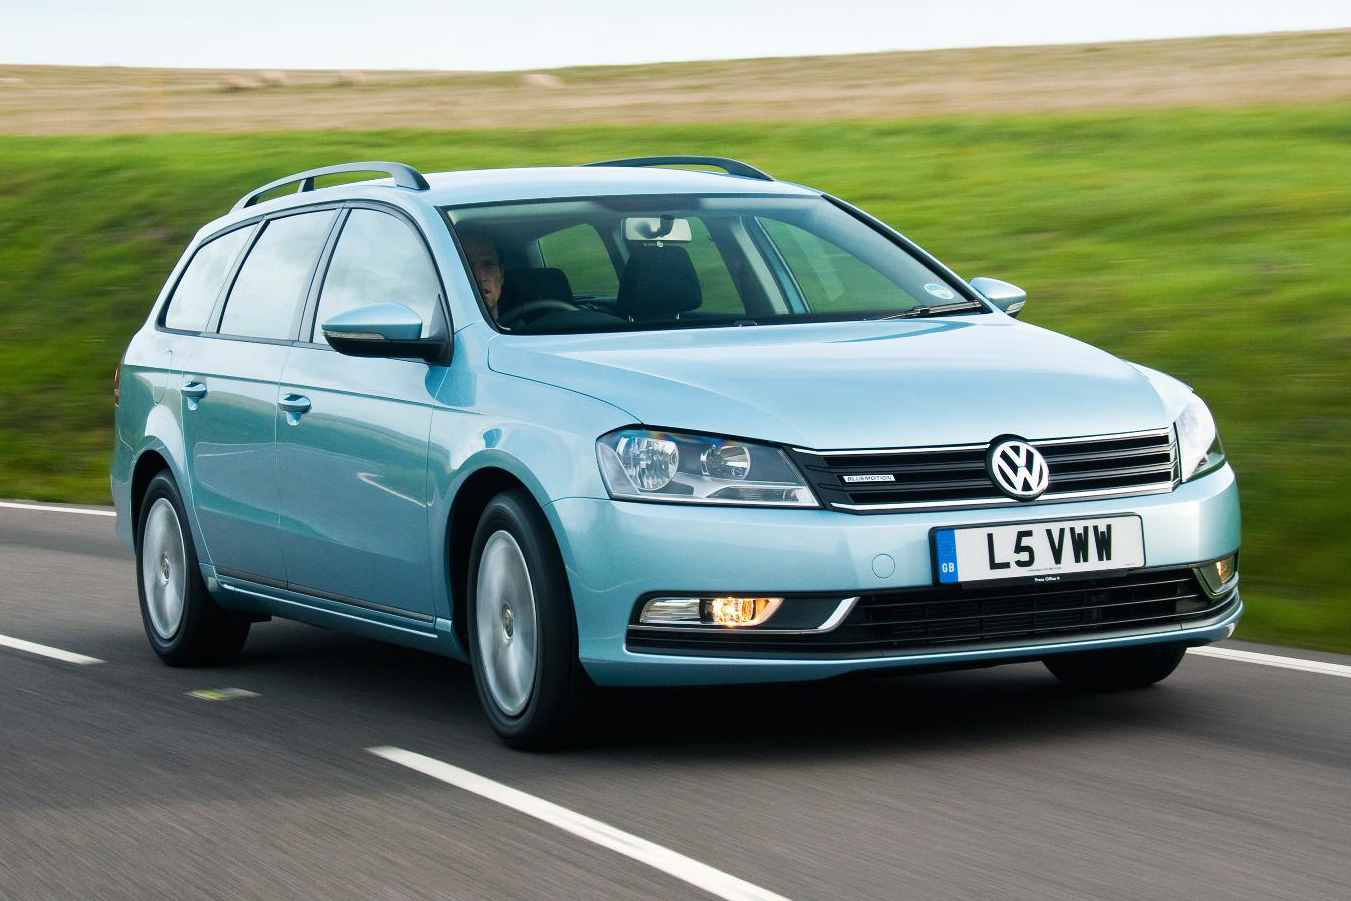 vw passat bluemotion estate is still jazzing it up wheel world reviews. Black Bedroom Furniture Sets. Home Design Ideas